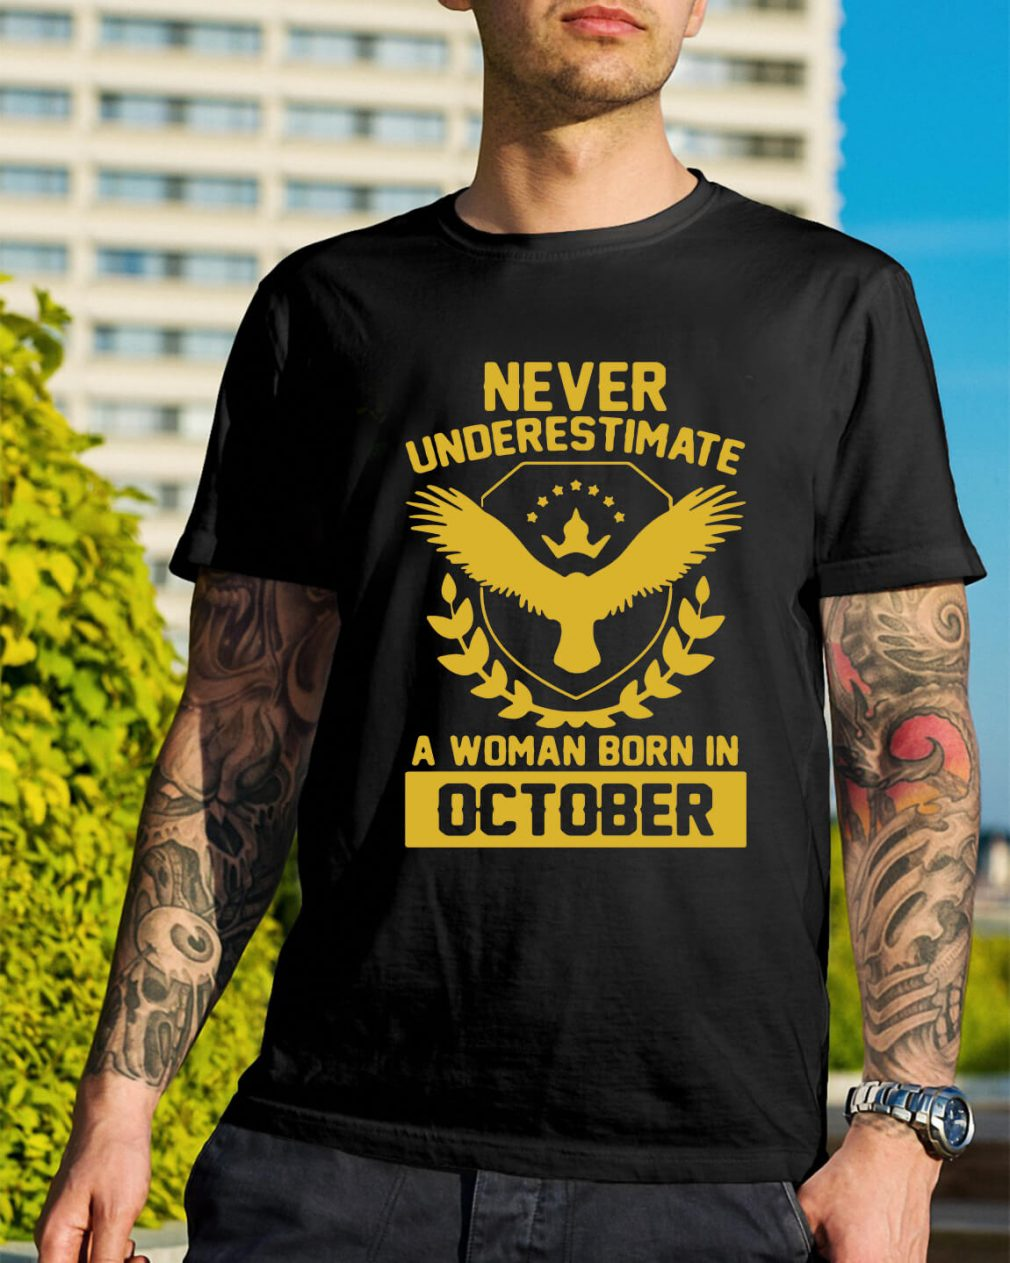 Never underestimate a woman born in October shirt